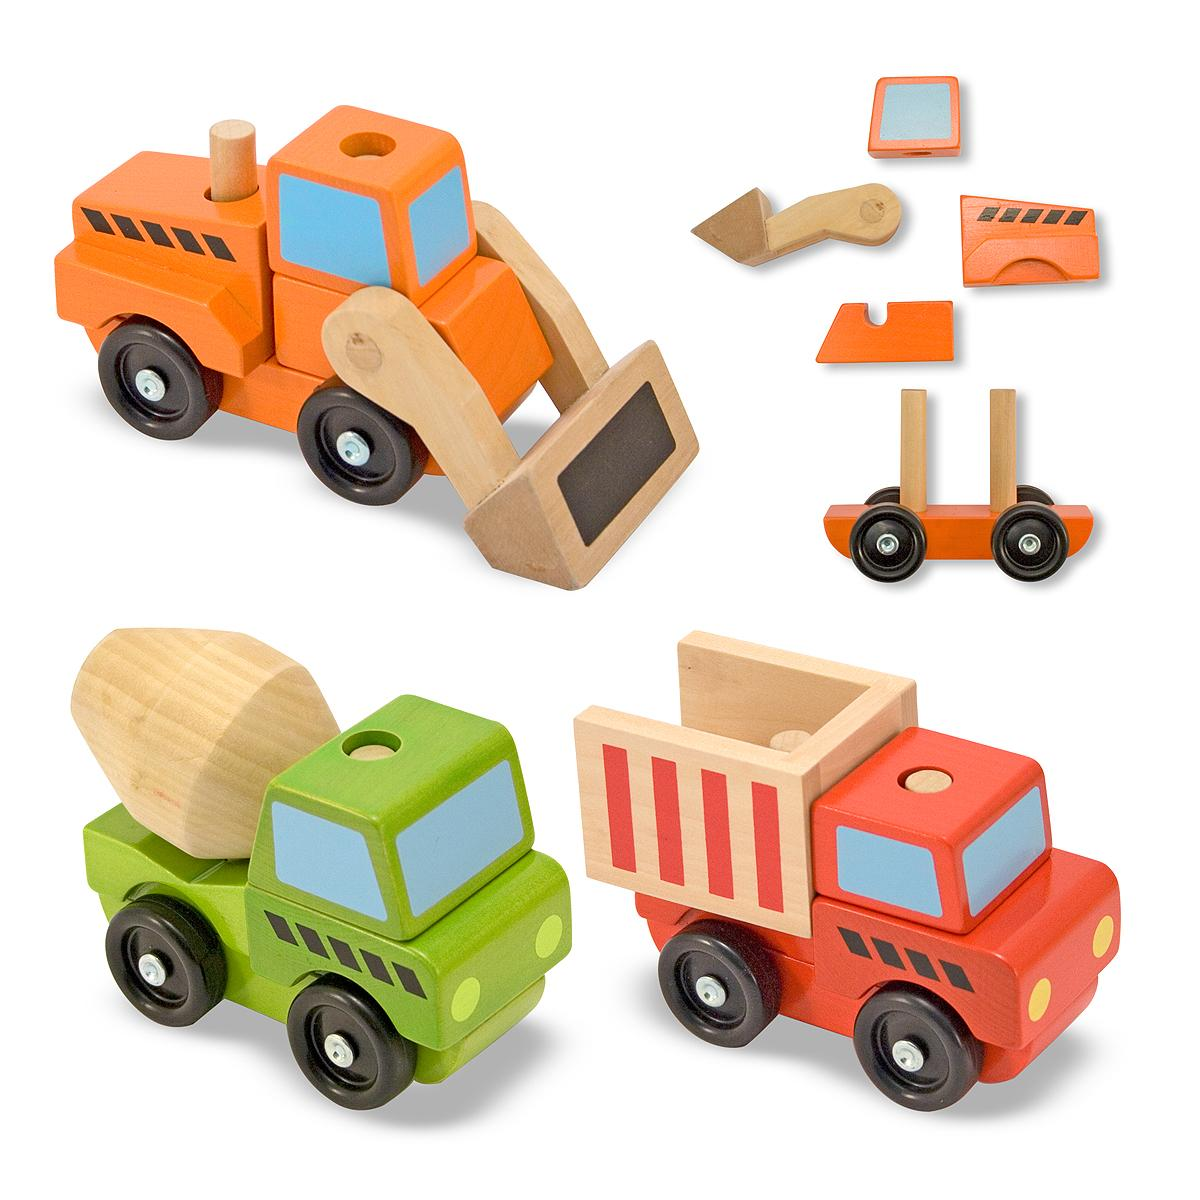 Toy Cars For 9 Year Olds : Amazon melissa doug stacking construction vehicles